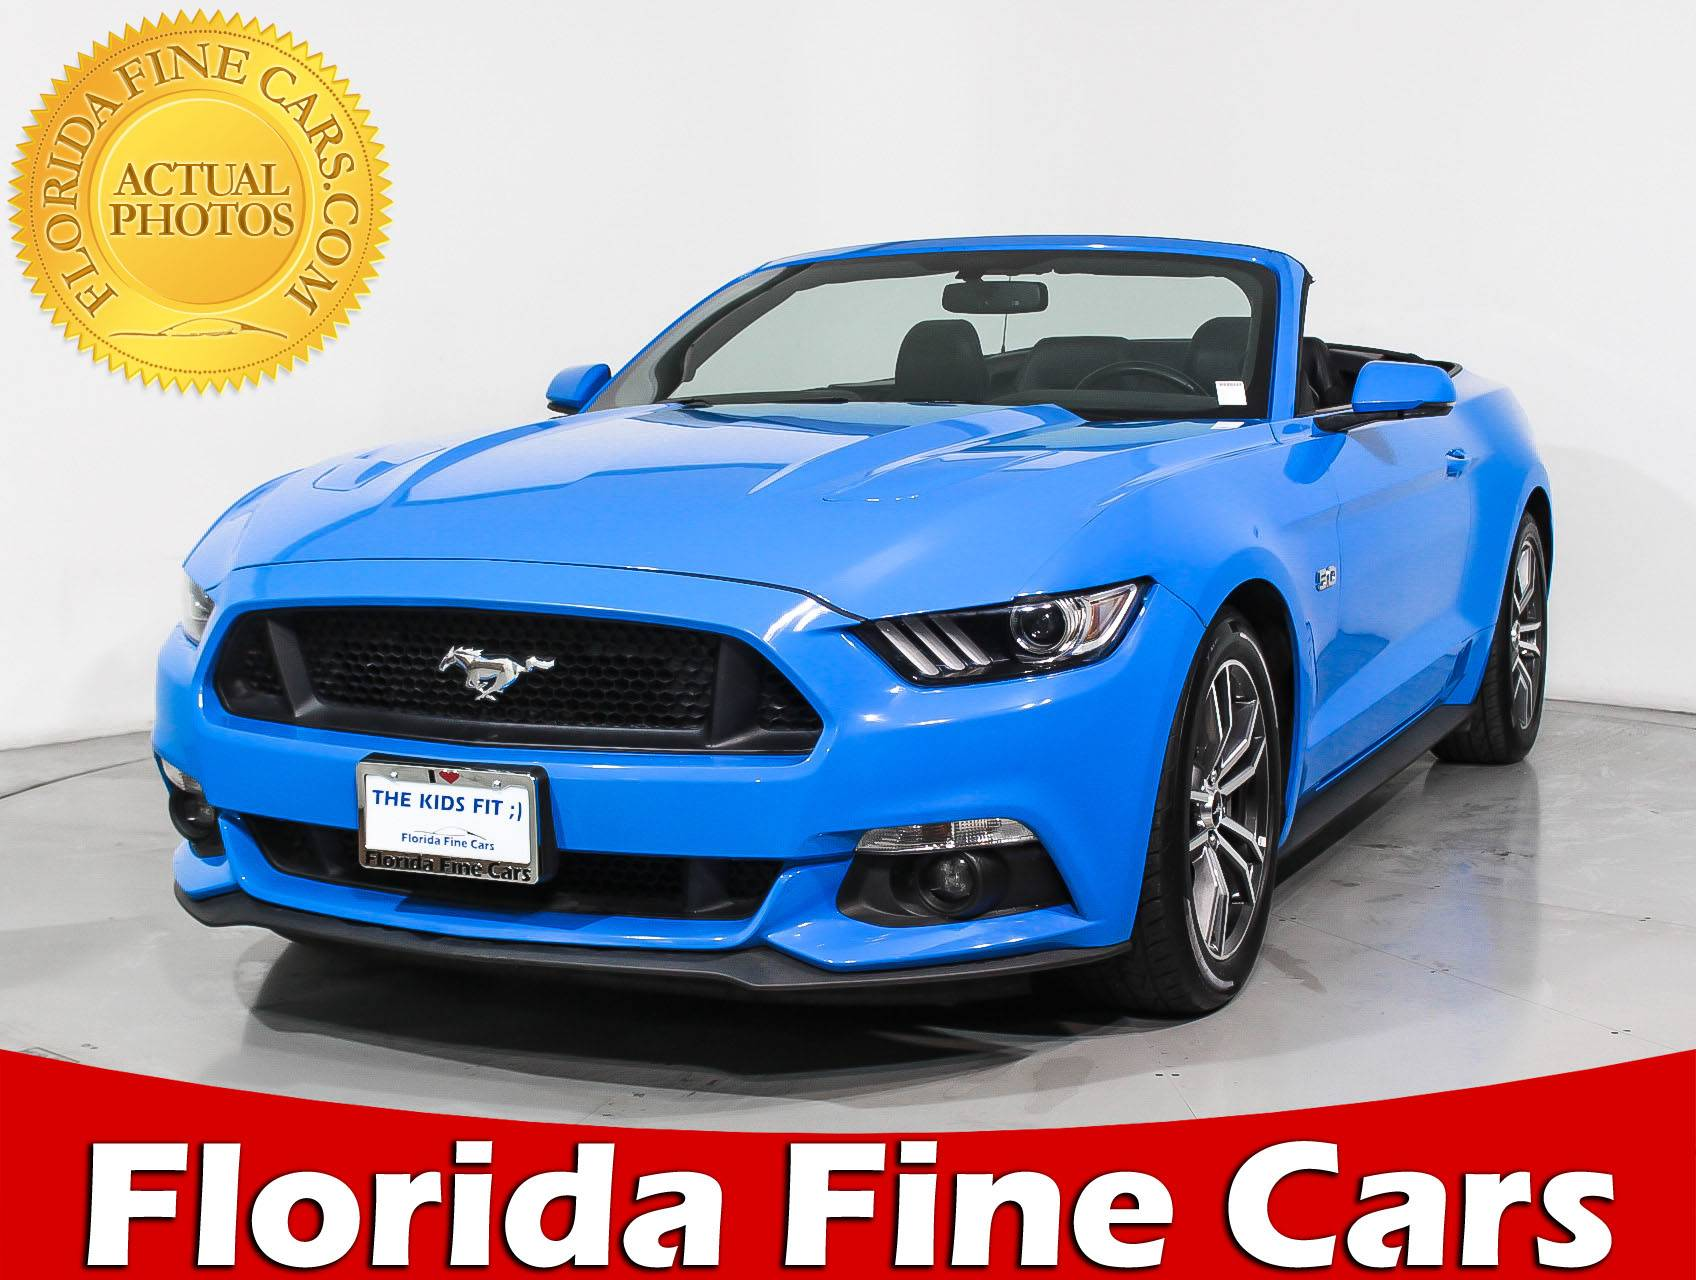 Used  Ford Mustang Gt Premium Convertible For Sale In Miami Fl  Florida Fine Cars